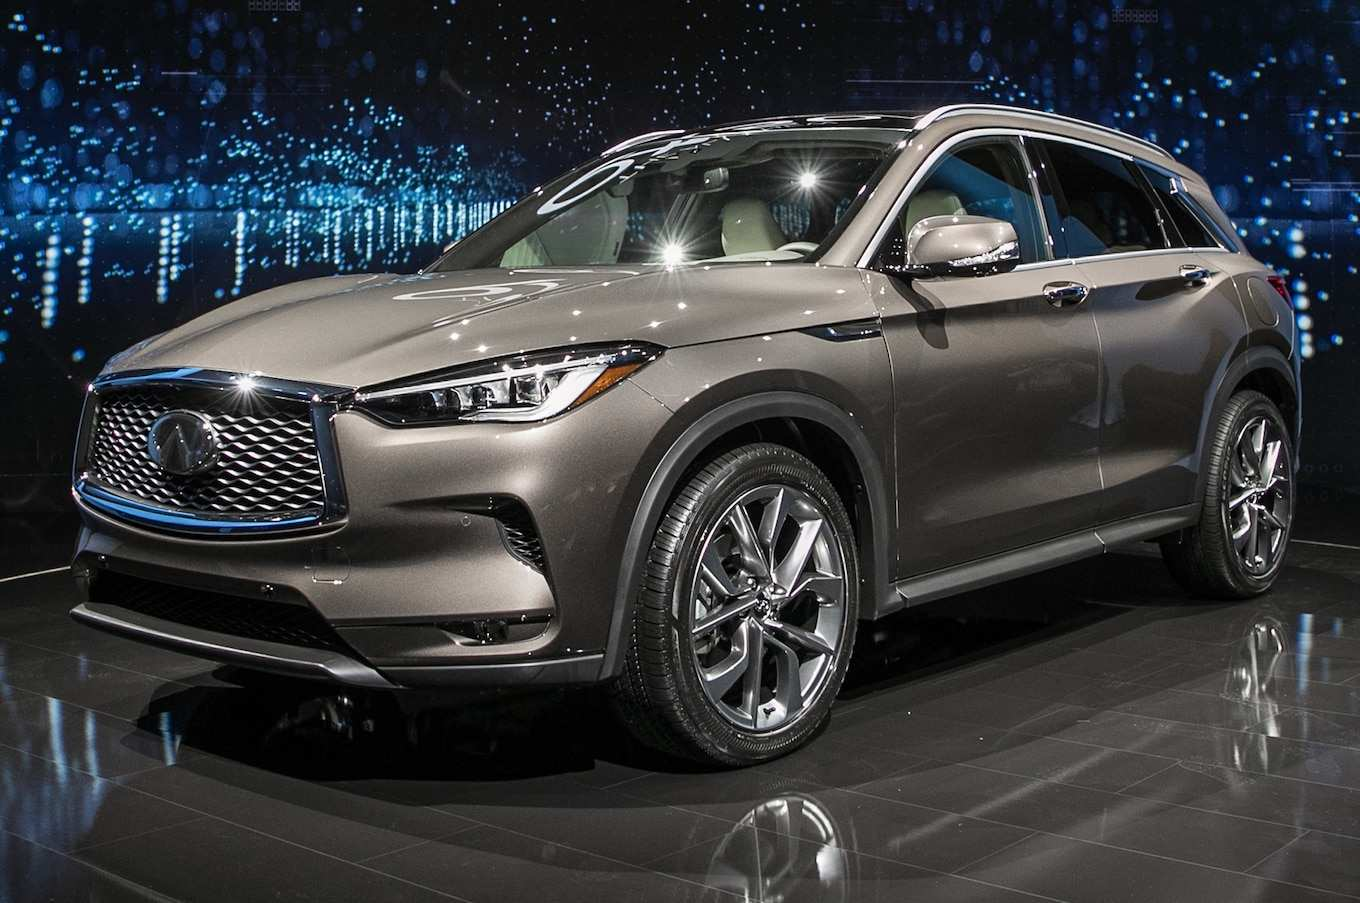 87 The 2019 Infiniti Qx50 Crossover Overview with 2019 Infiniti Qx50 Crossover